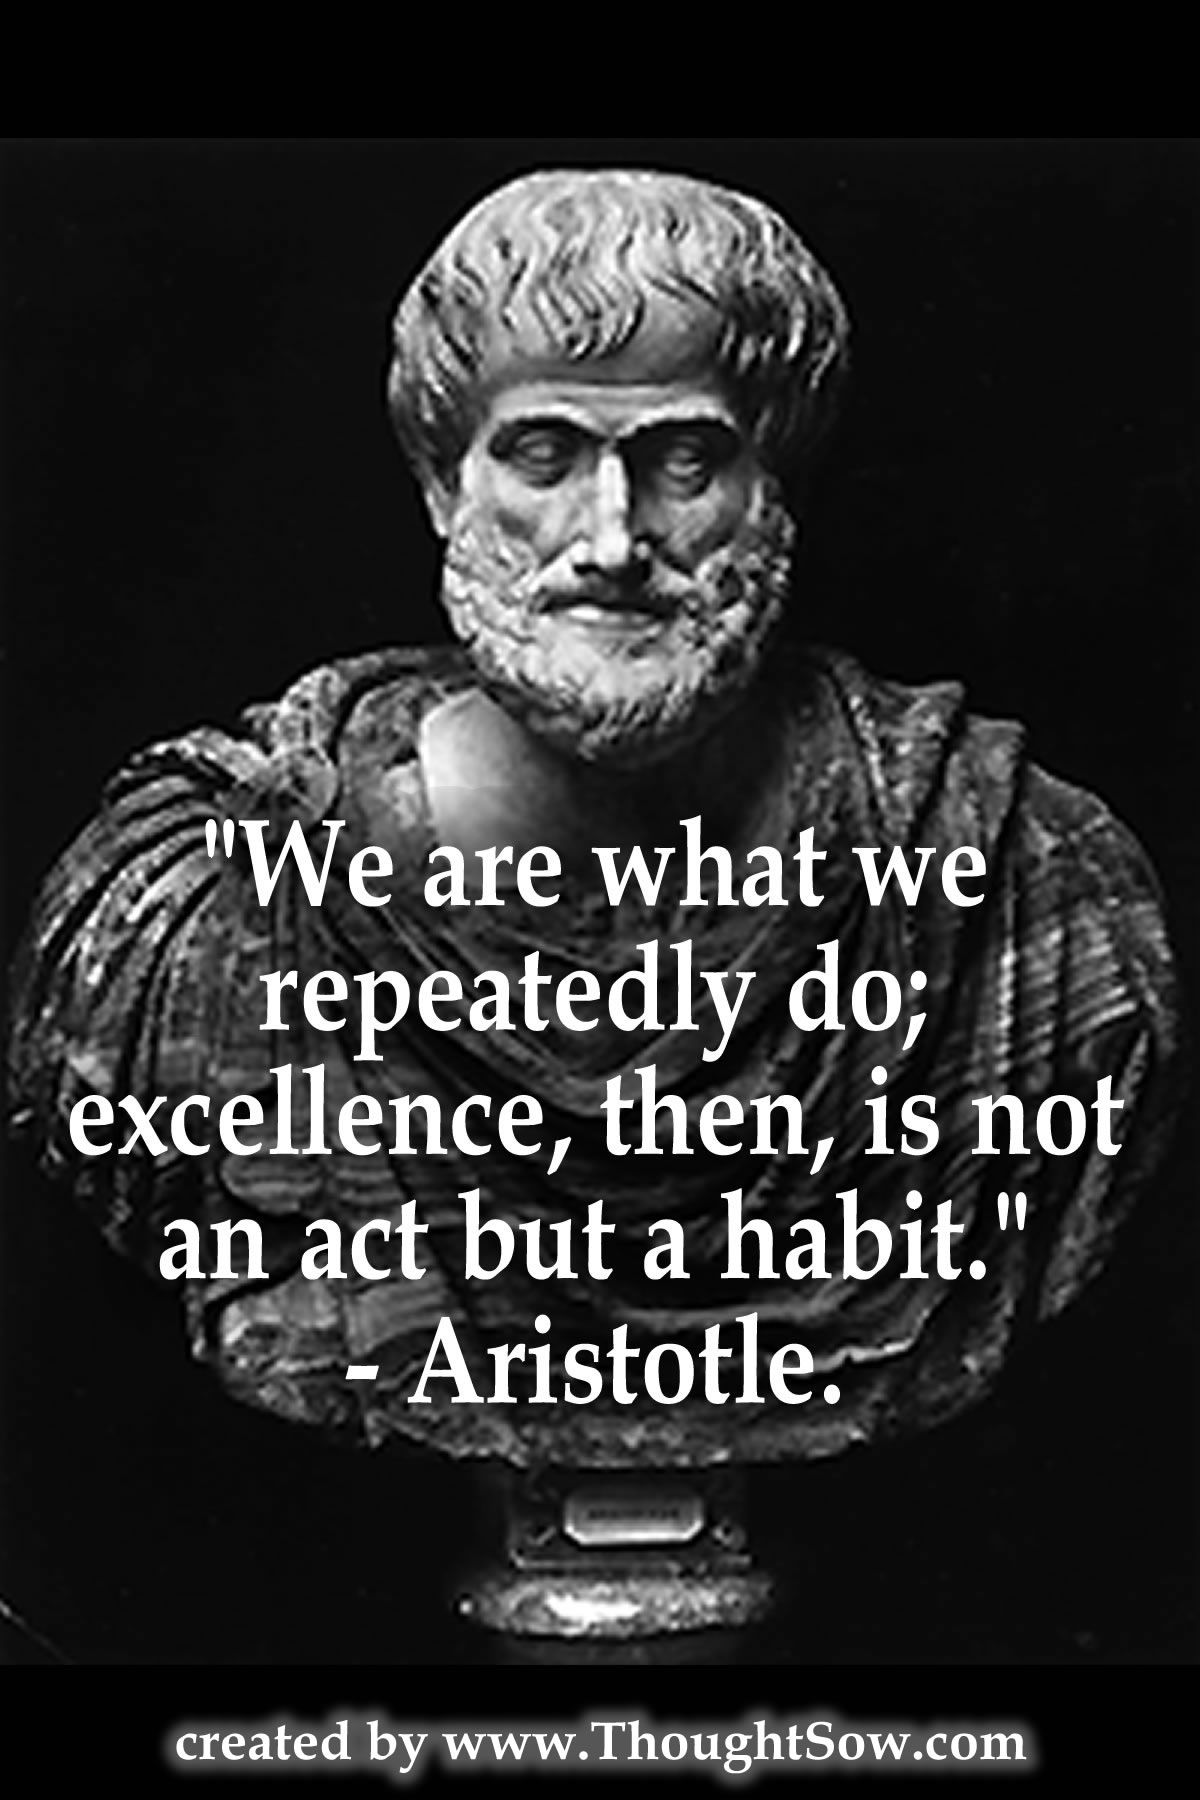 My all time favorite fitness motivational pictures birth guy philosophy was founded in the greek civilization and aristotle was one of the leading philosophers along side plato pythagoras thales just to fandeluxe Image collections